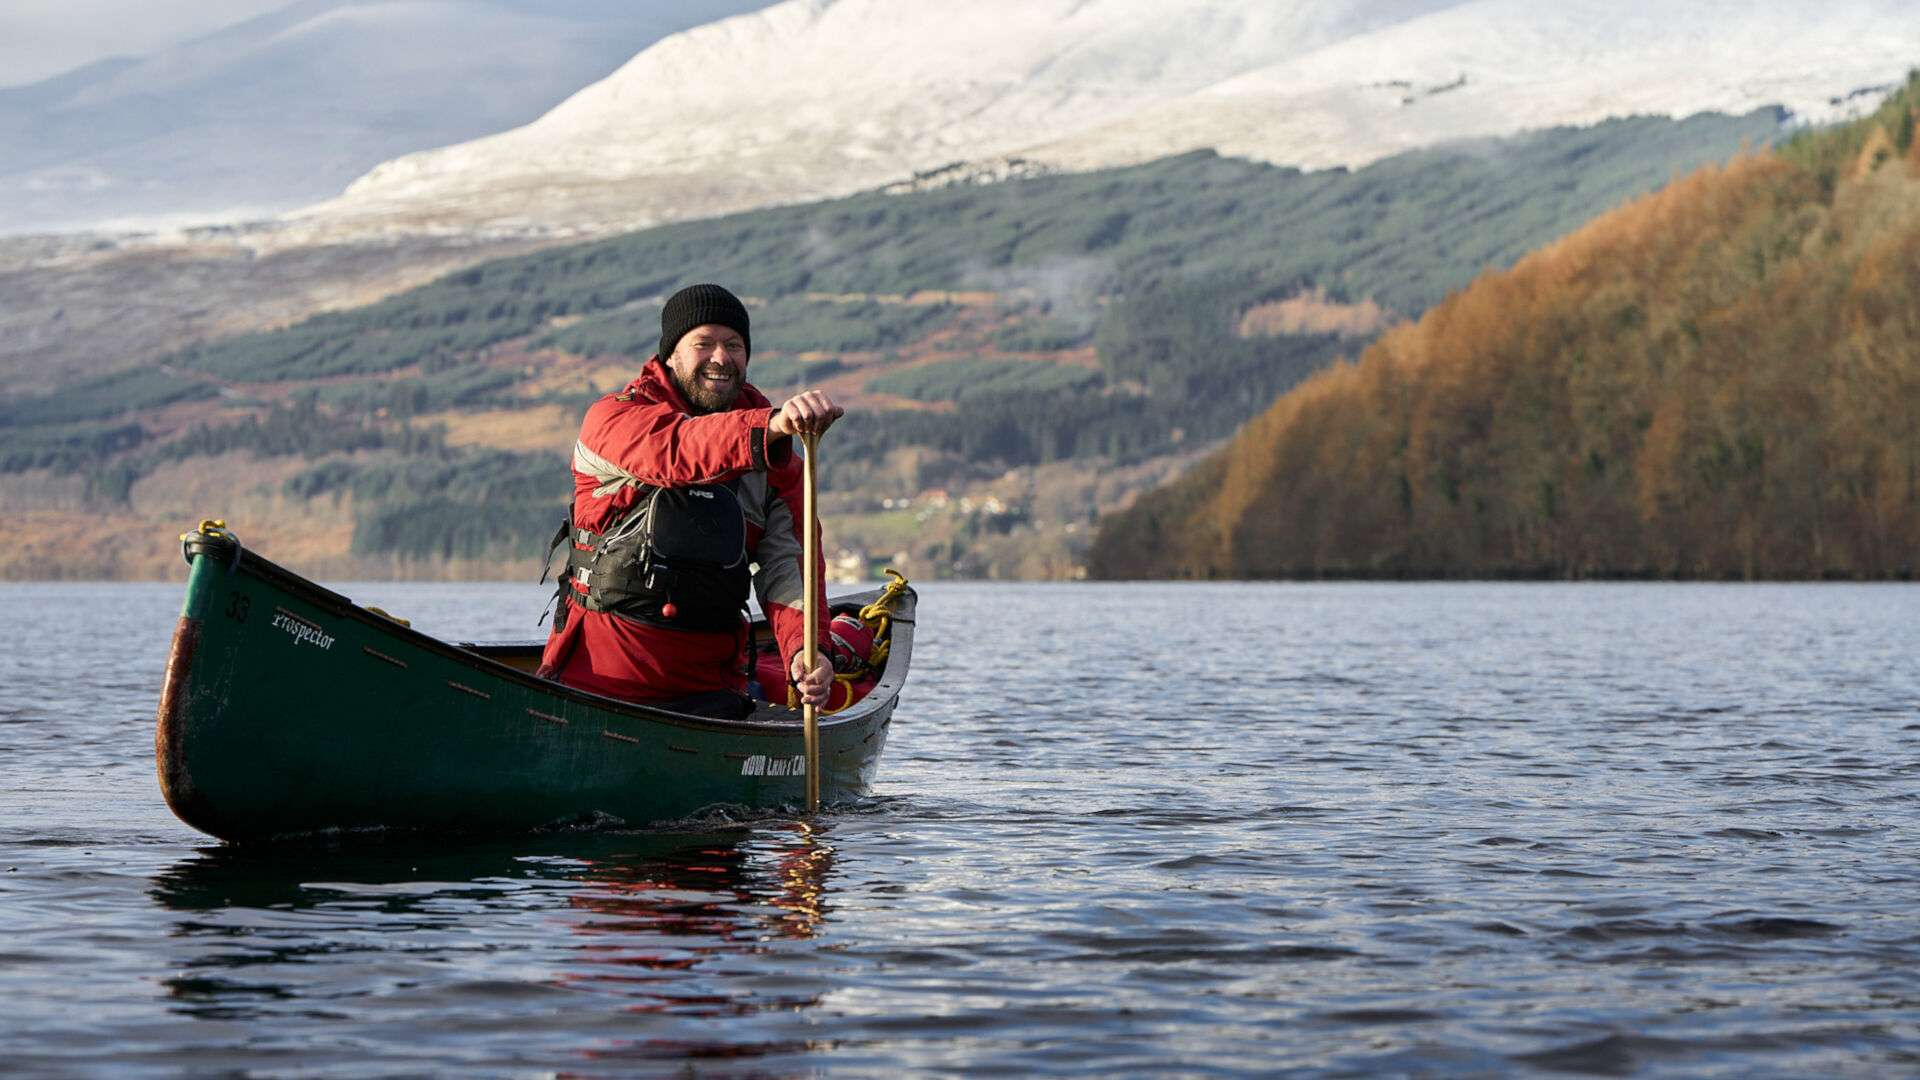 Canoeing at Beyond Adventure in Perthshire